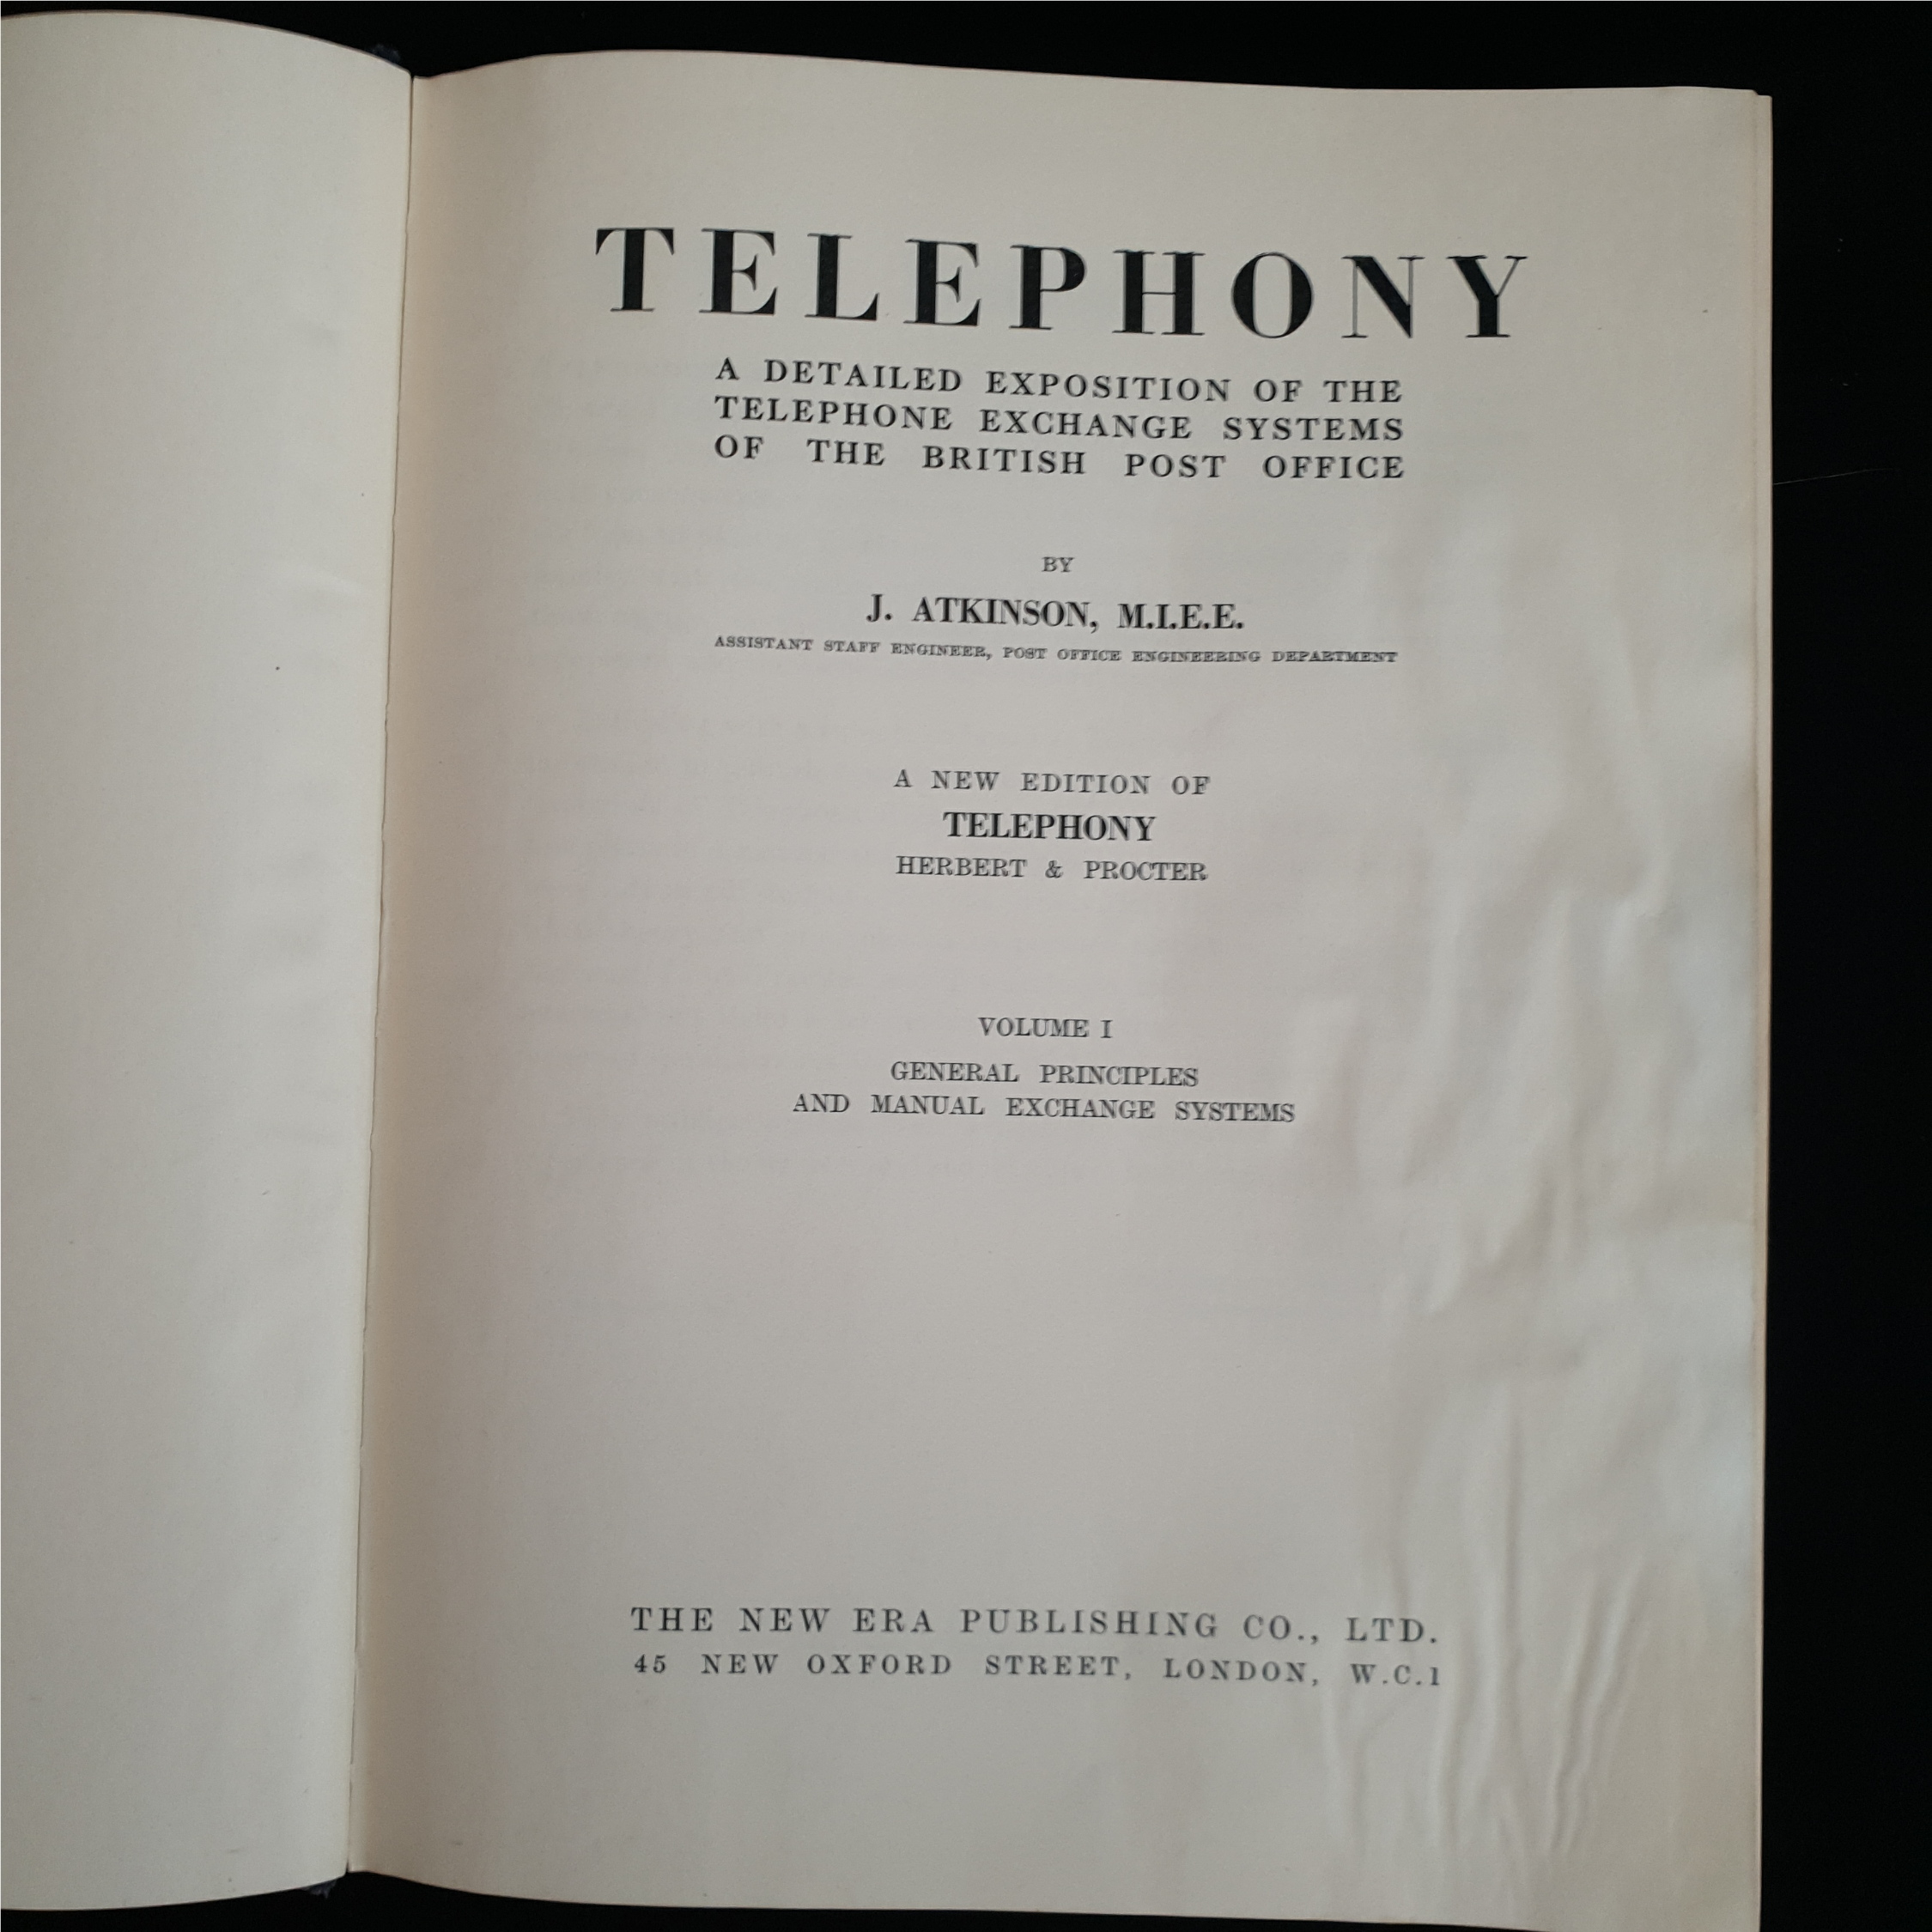 Vintage Books 2 Volumes of Telephony - Image 3 of 3